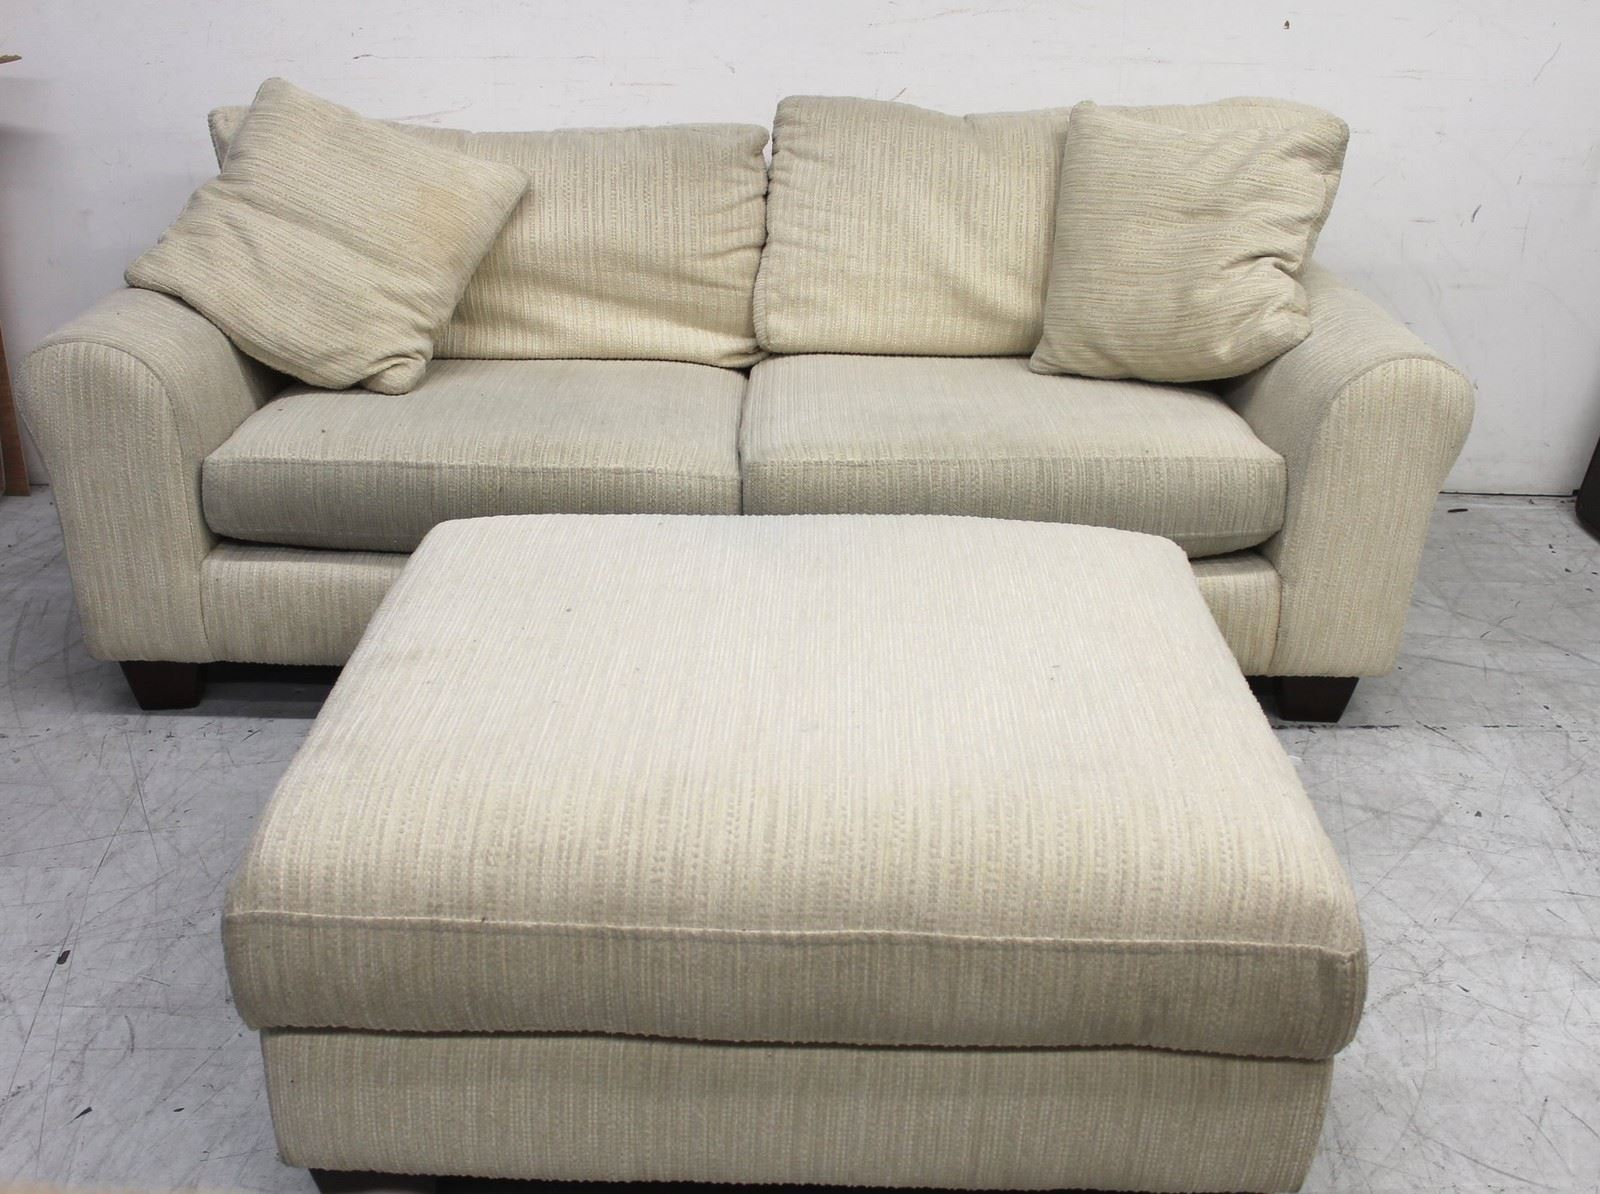 2 3 Seater Textured Cream Fabric Upholstered Sofa With